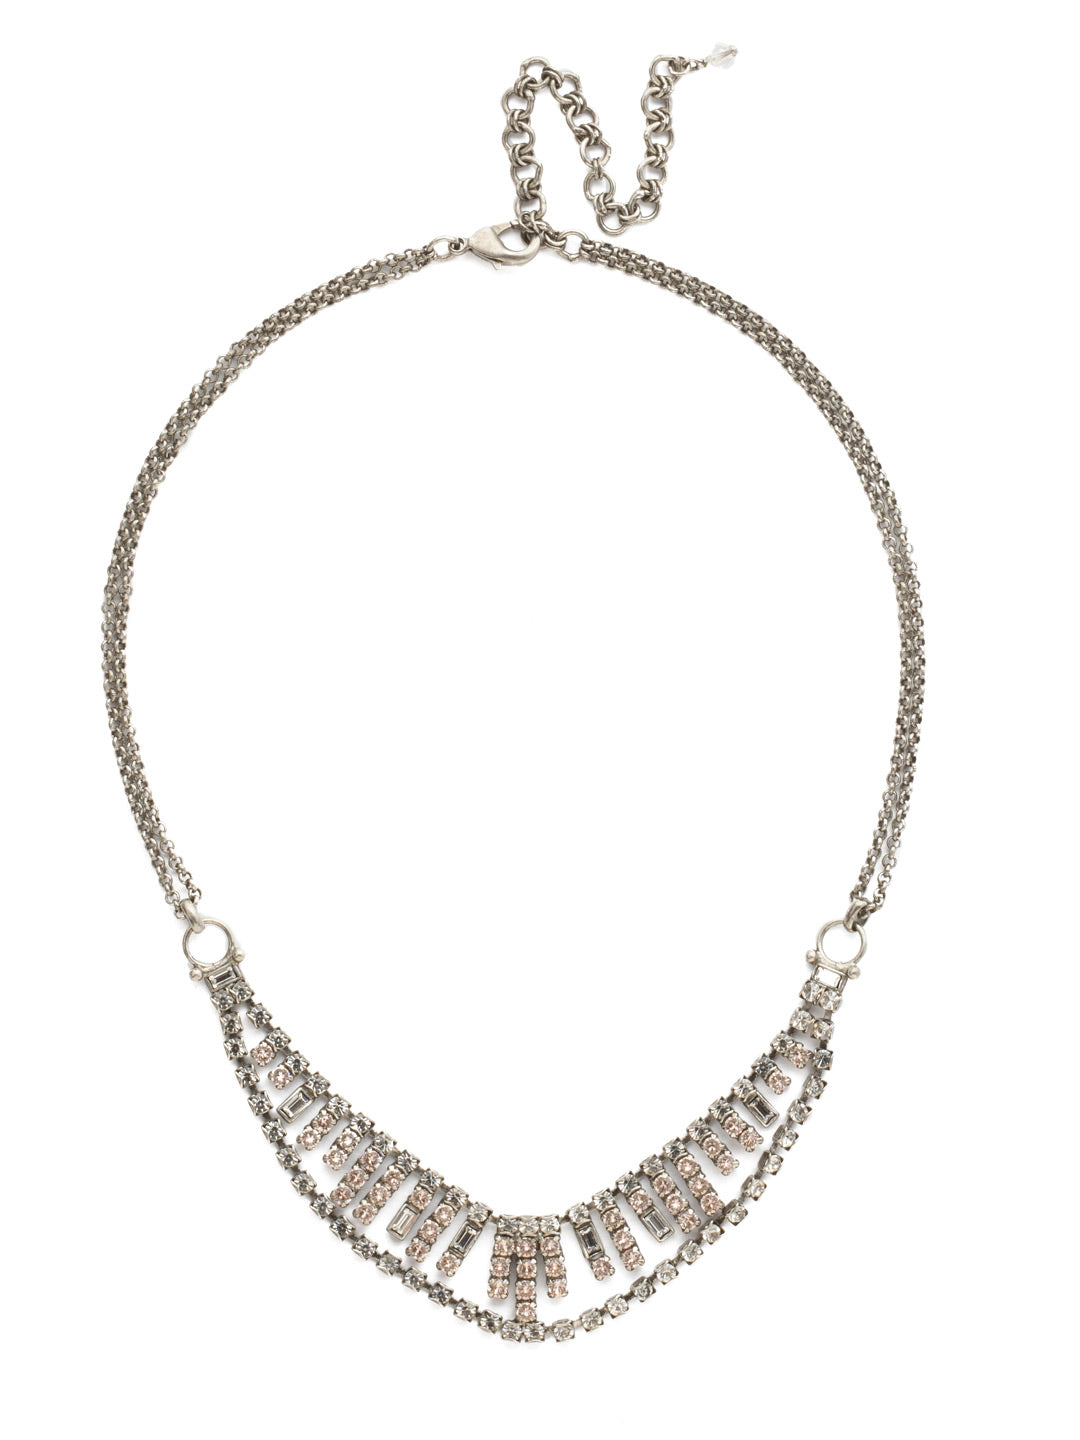 Sparkling Crystal Bib Necklace - NCF4ASSNB